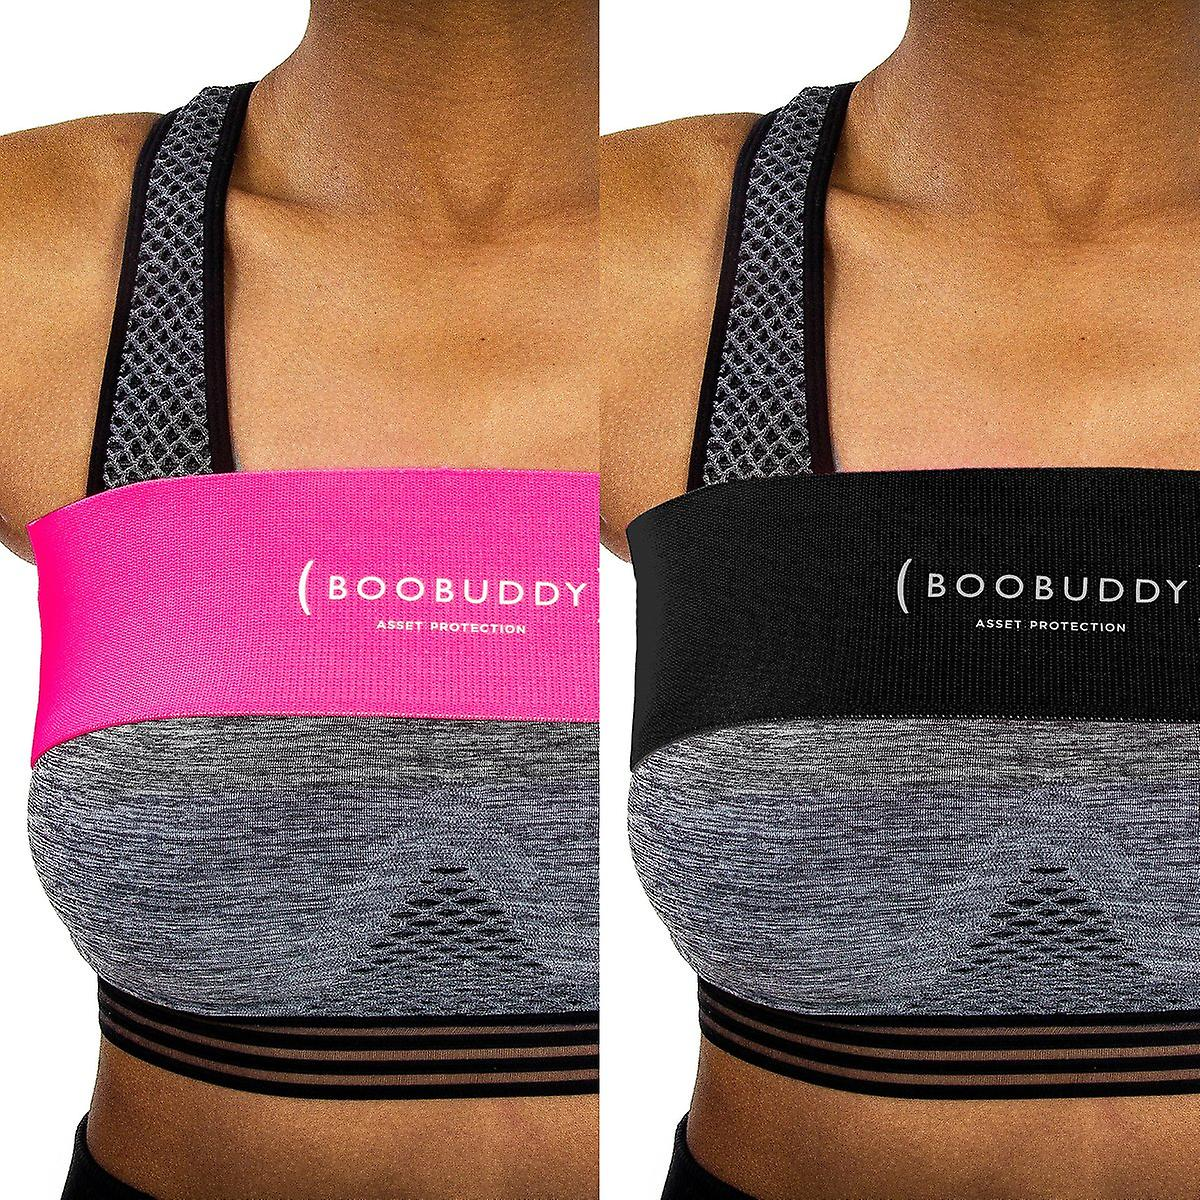 Boobuddy breast support band bundle – black & pink